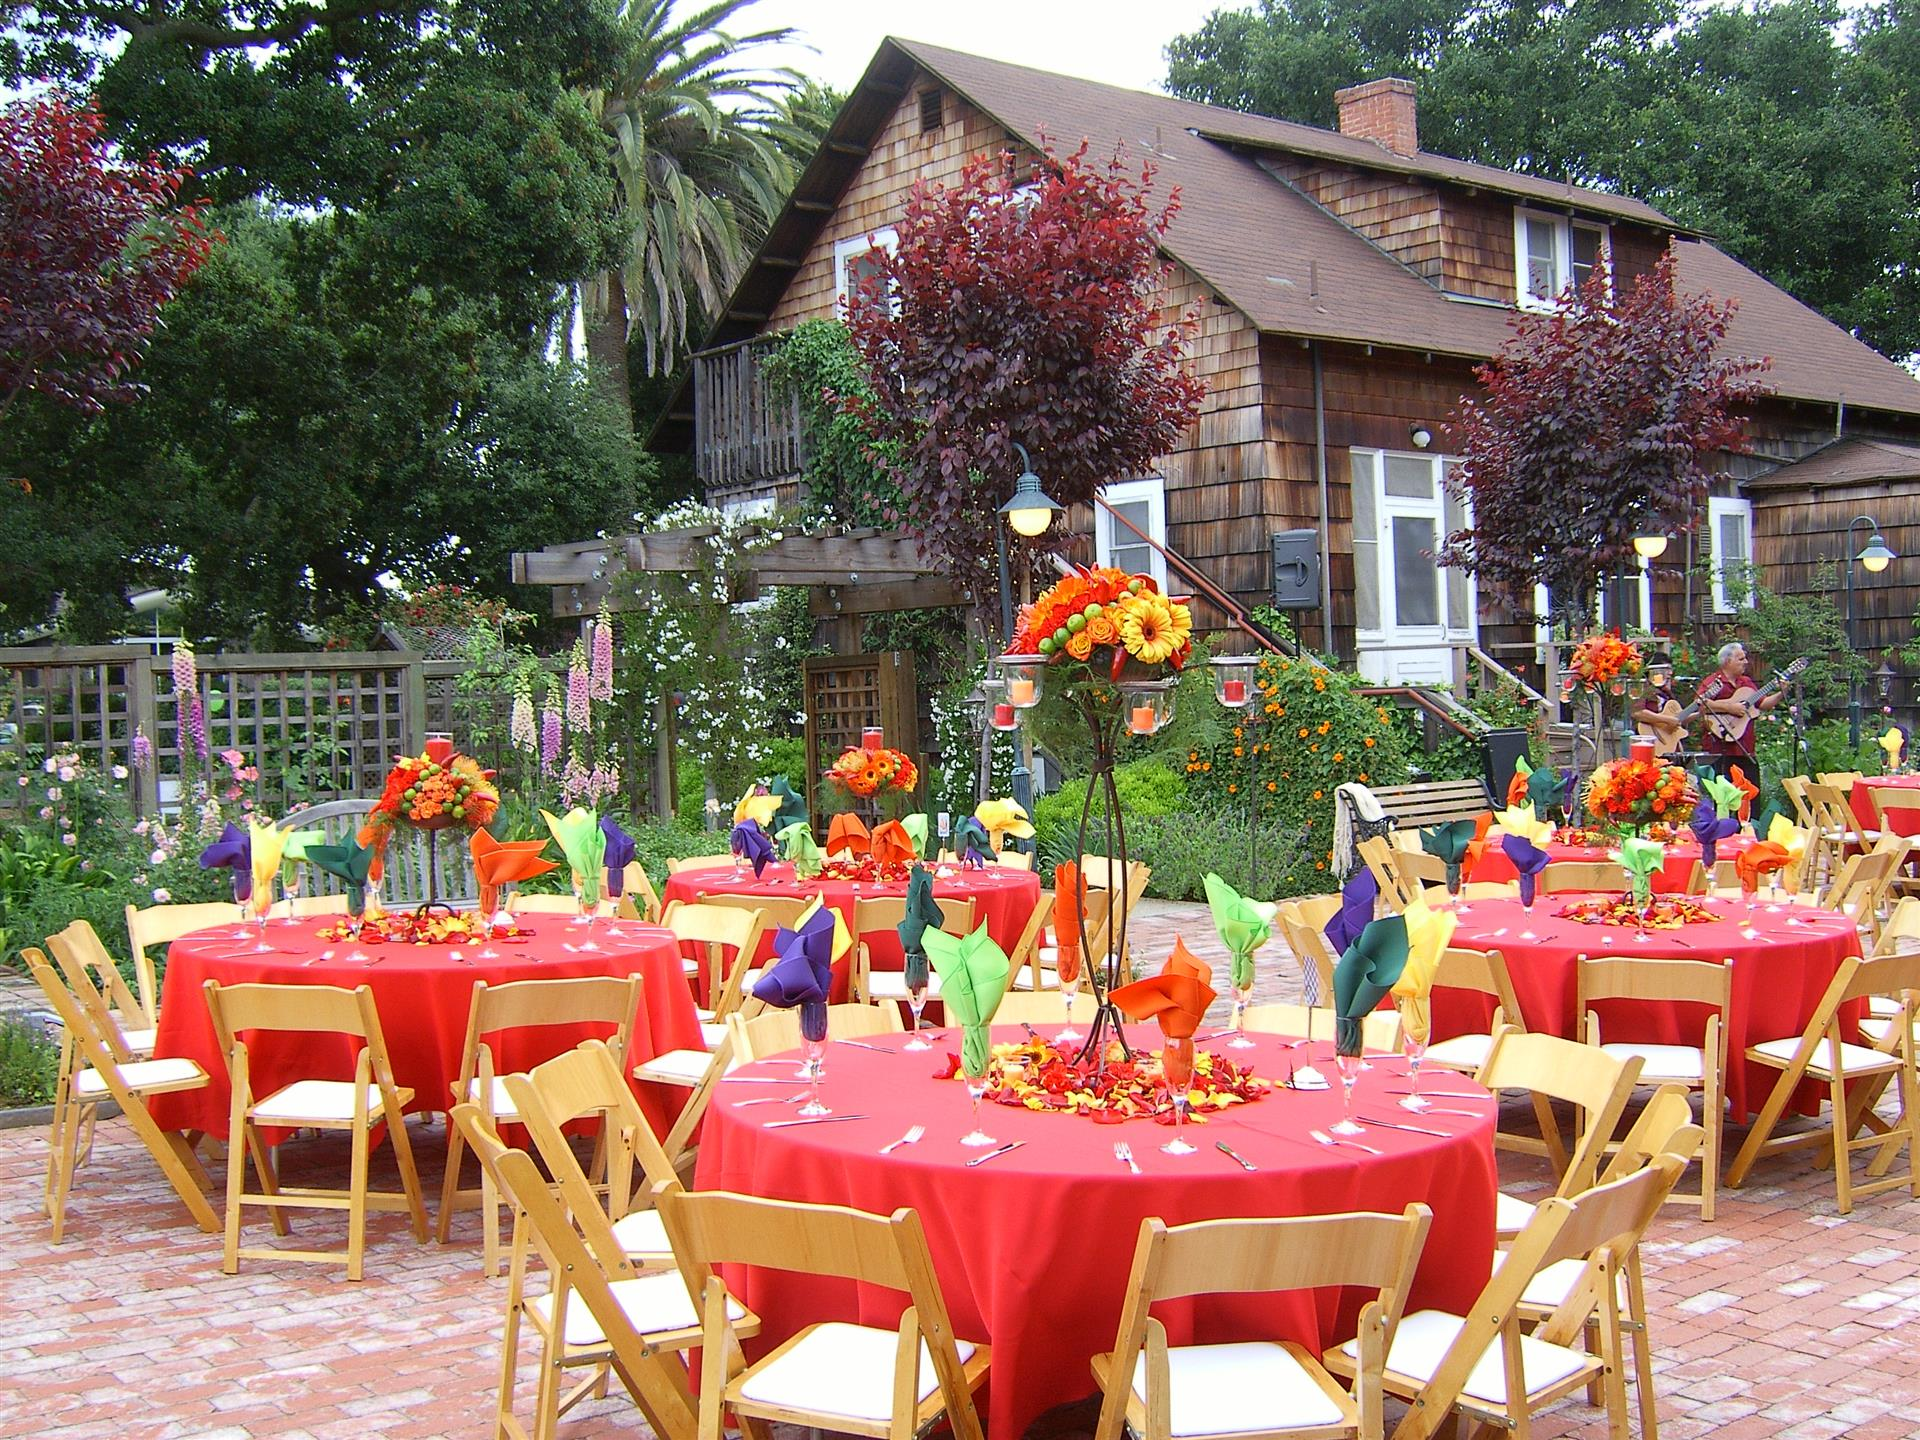 outdoor tables with flowers and placesettings on a patio